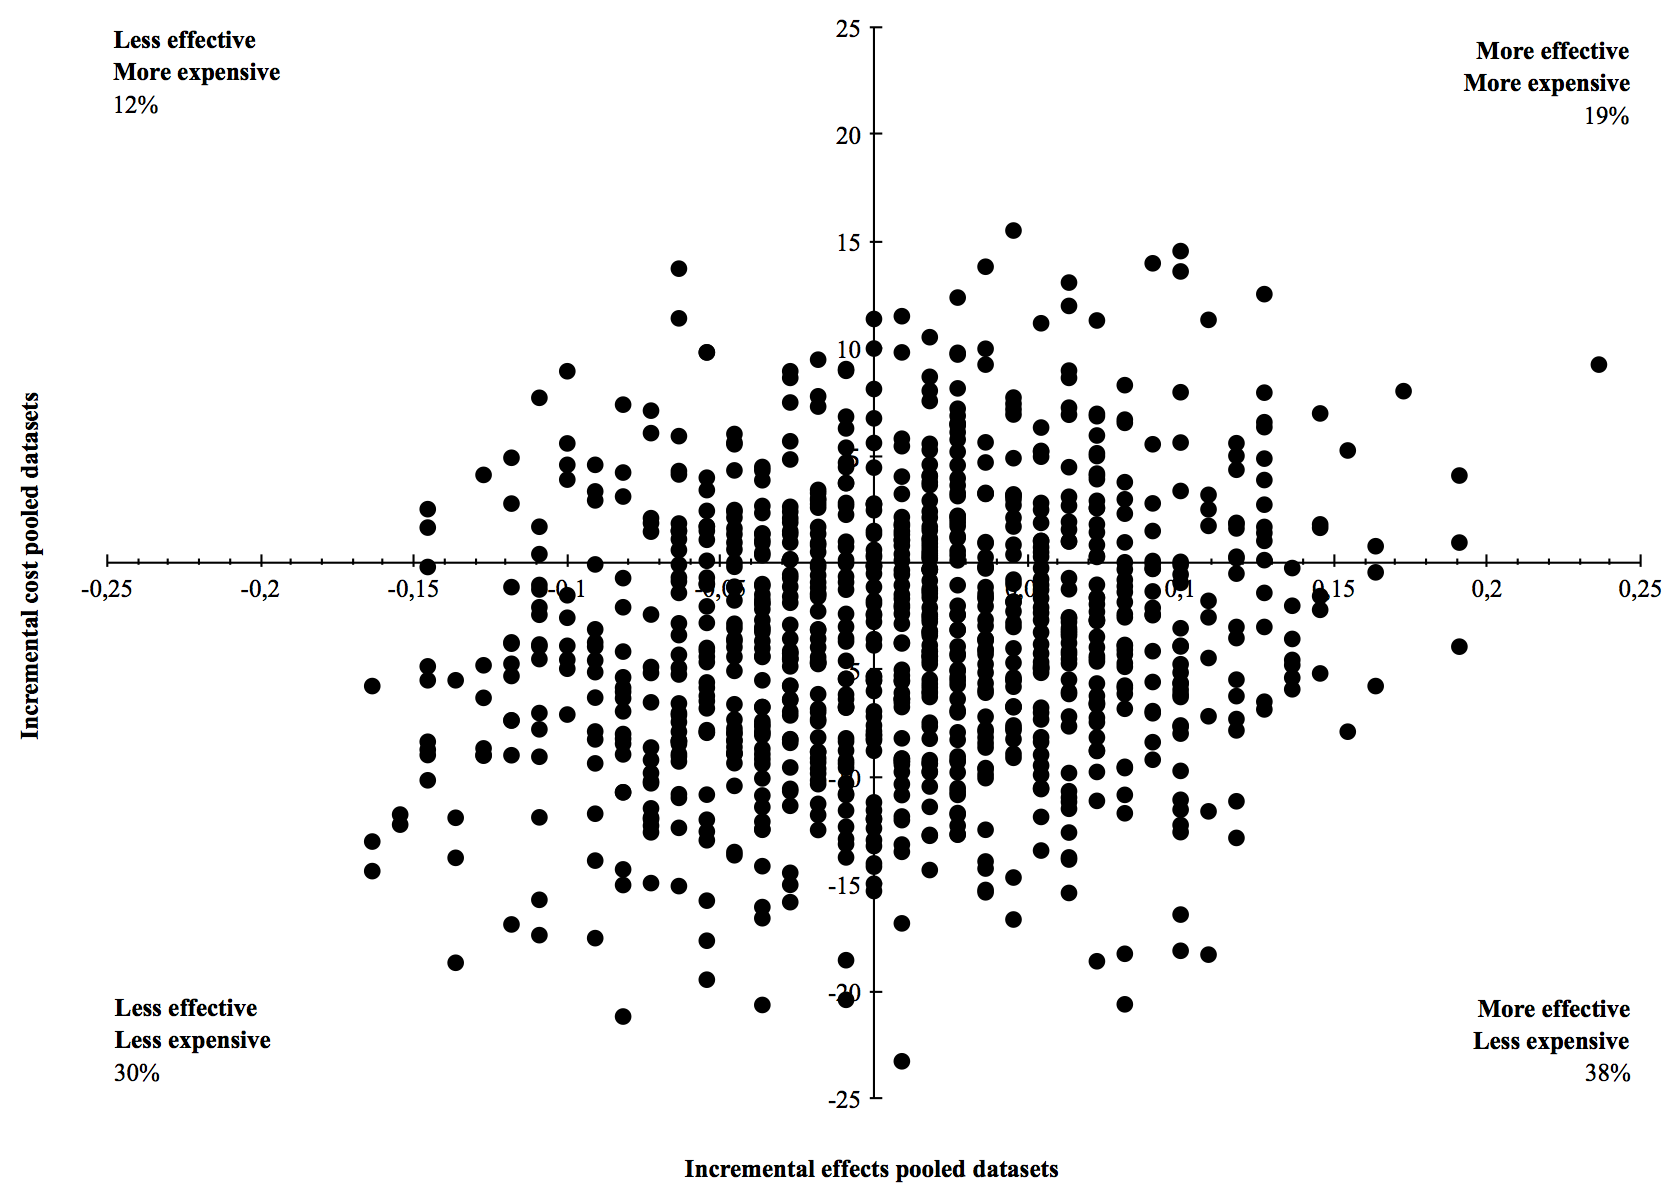 """Cost-effectivenessplane presenting cost-effect pairs estimatedusing bootstrapping (1000 samples) for the difference in ankle sprain recurrence risk between the App group and the Booklet group. Each dot represents one bootstrapped cost-effect pair and the difference in costs and effects of the App group compared to the Booklet group. The outcomes of the samples are spread over the four quadrants, with only 38% of the bootstrapped cost- effect pairs in the south-east """"dominant"""" quadrant"""